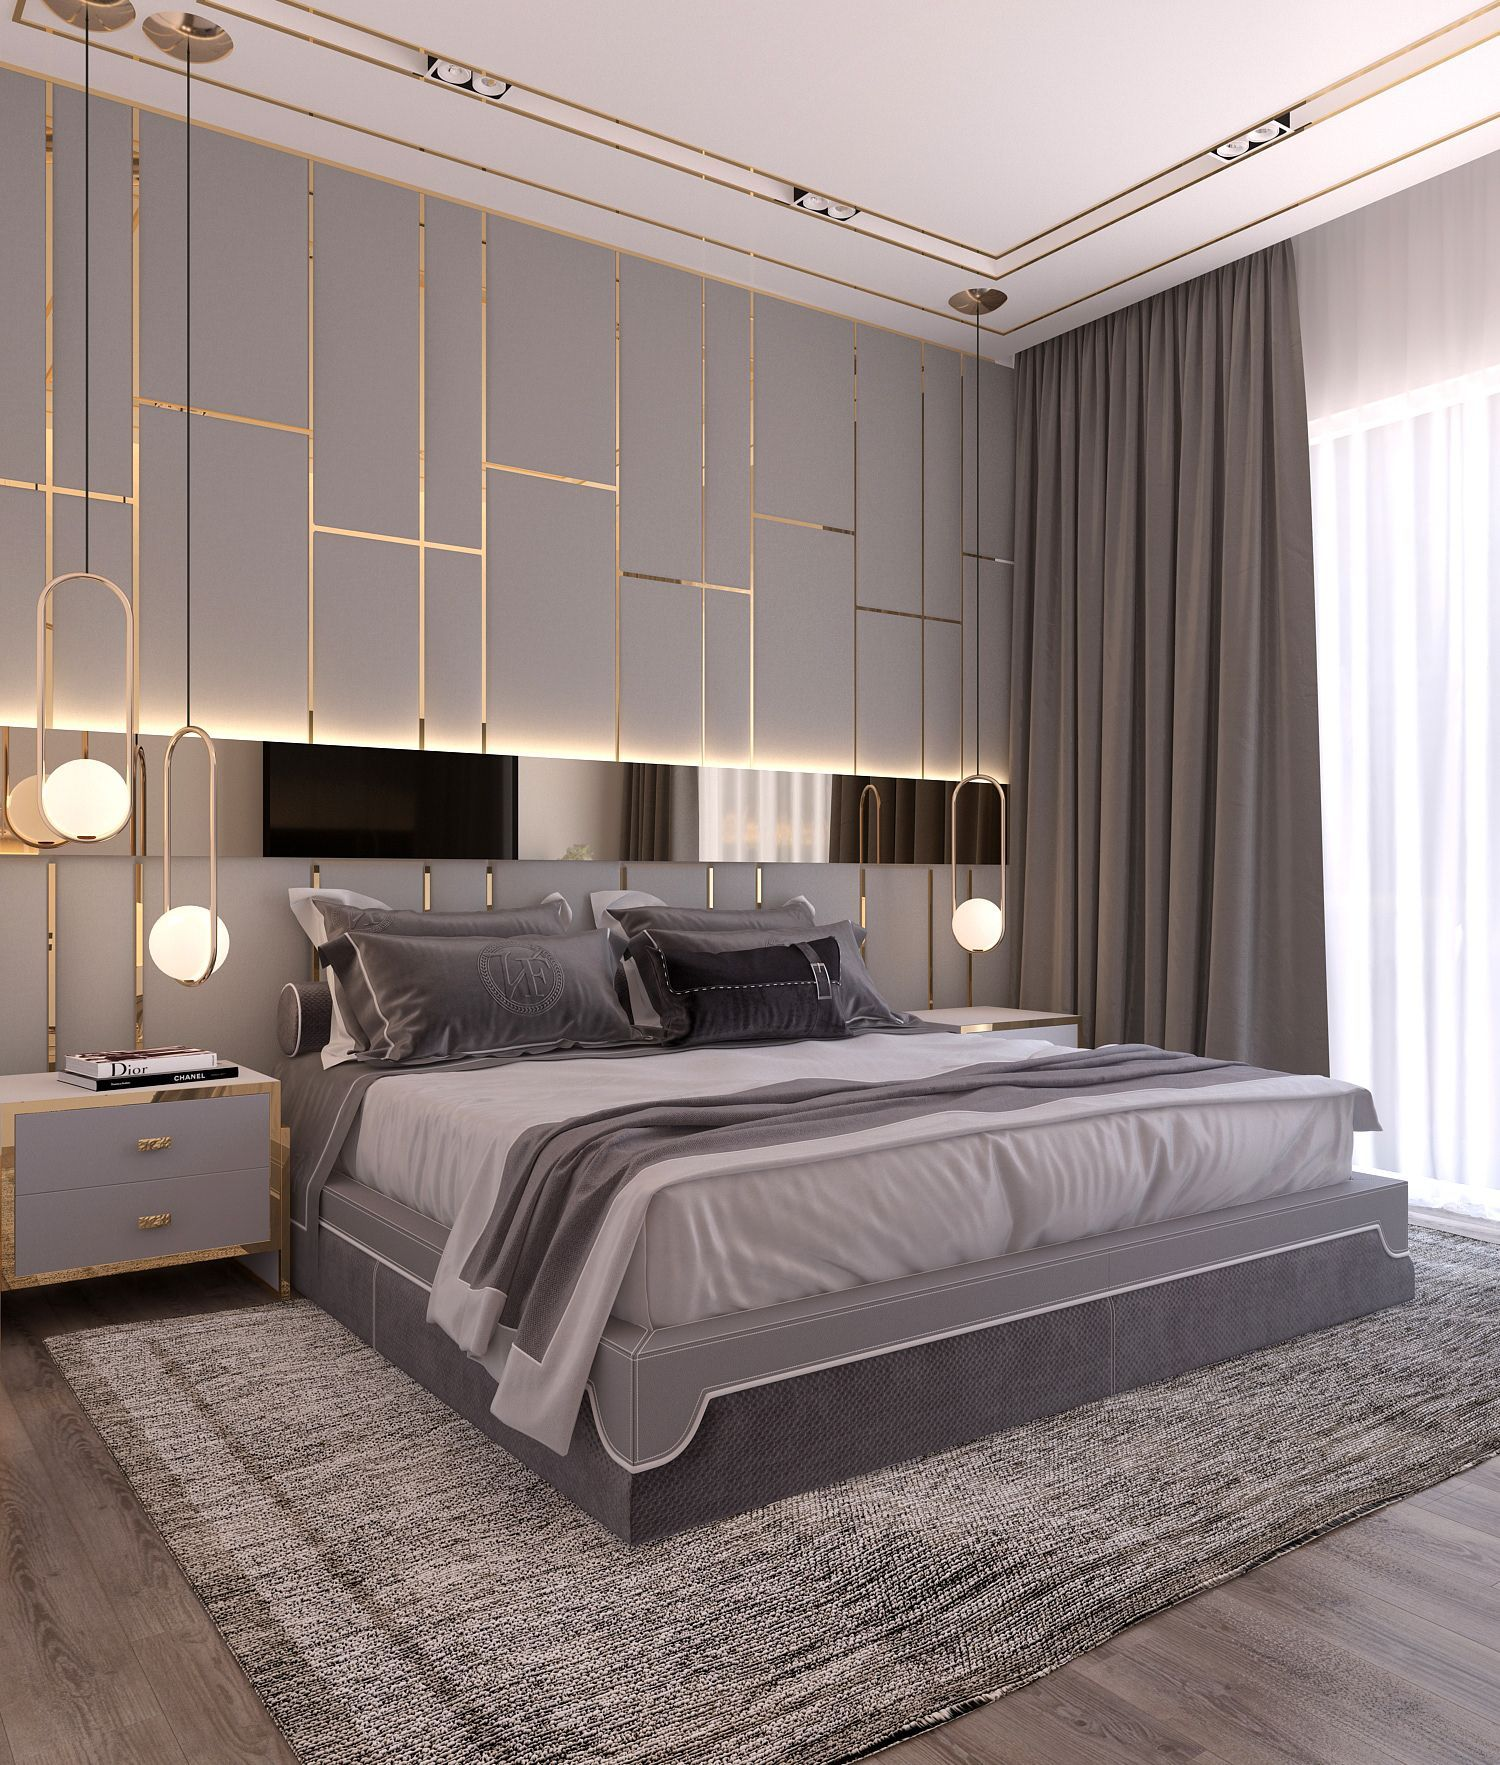 12 Clever Ideas How To Craft Modern Style Bedroom Simple Bedroom Design Luxury Bedroom Master Modern Style Bedroom